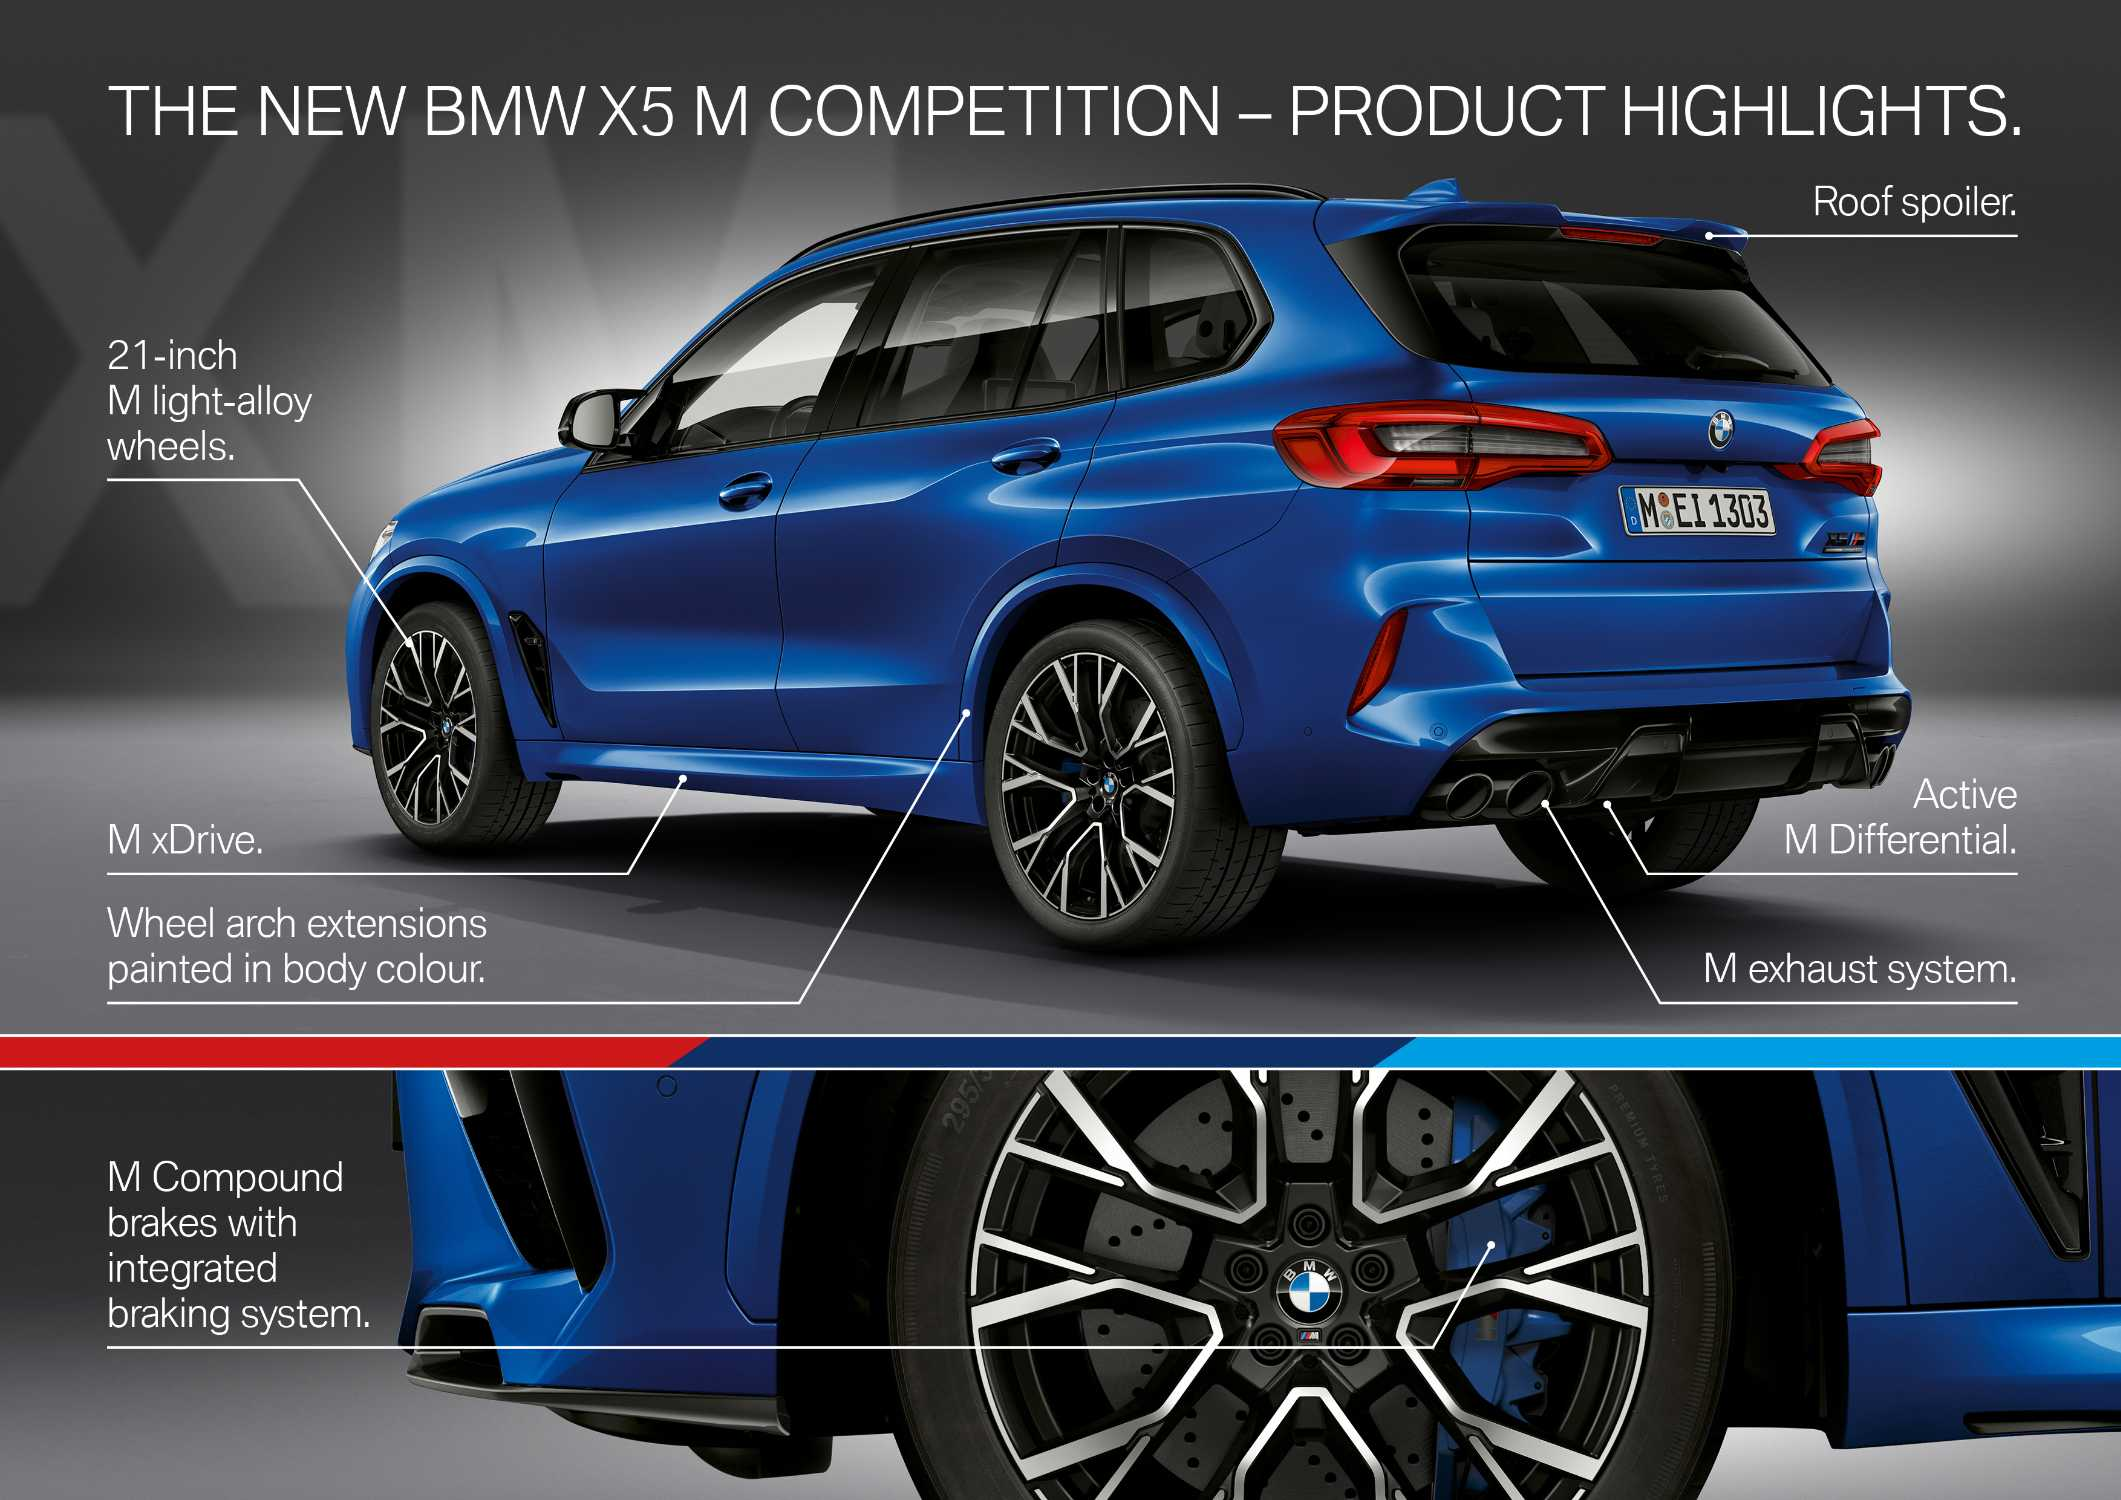 The new BMW X5 M and BMW X5 M Competition. (10/2019)